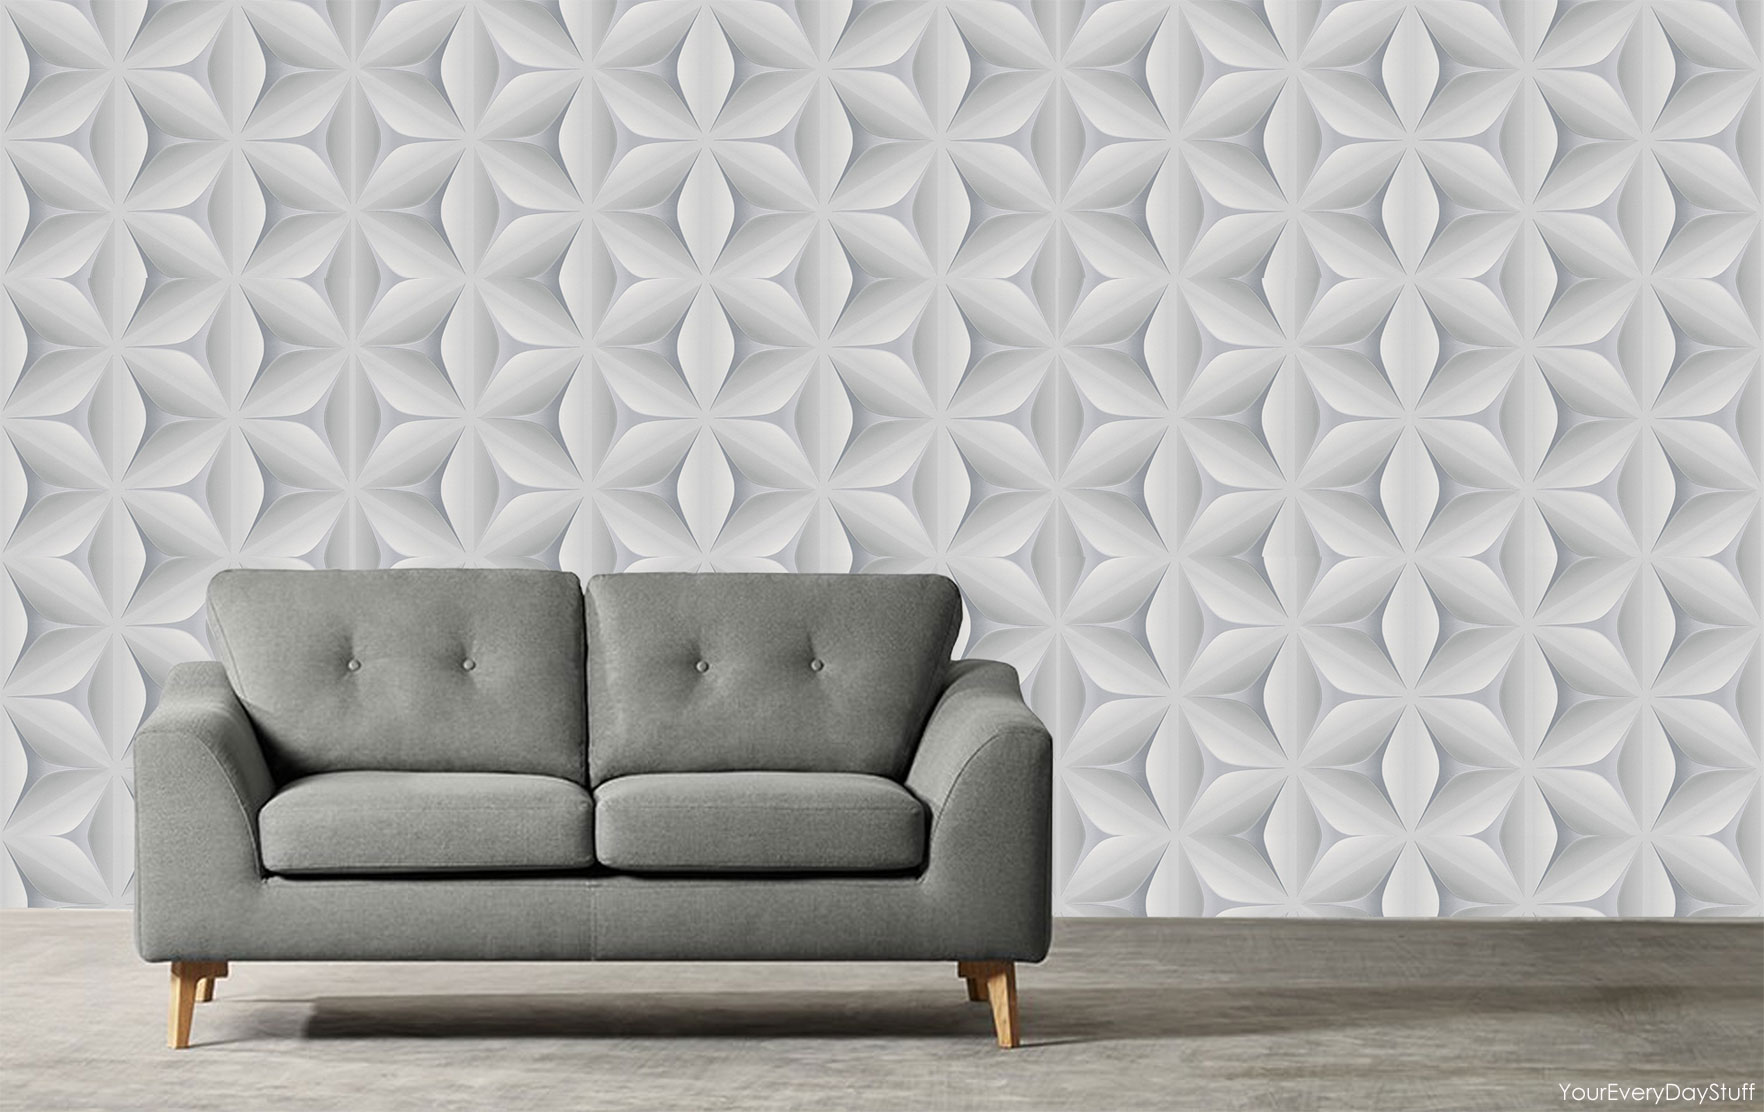 Retro Wallpaper Vintage Star Leaf 3d Abstract Geometric